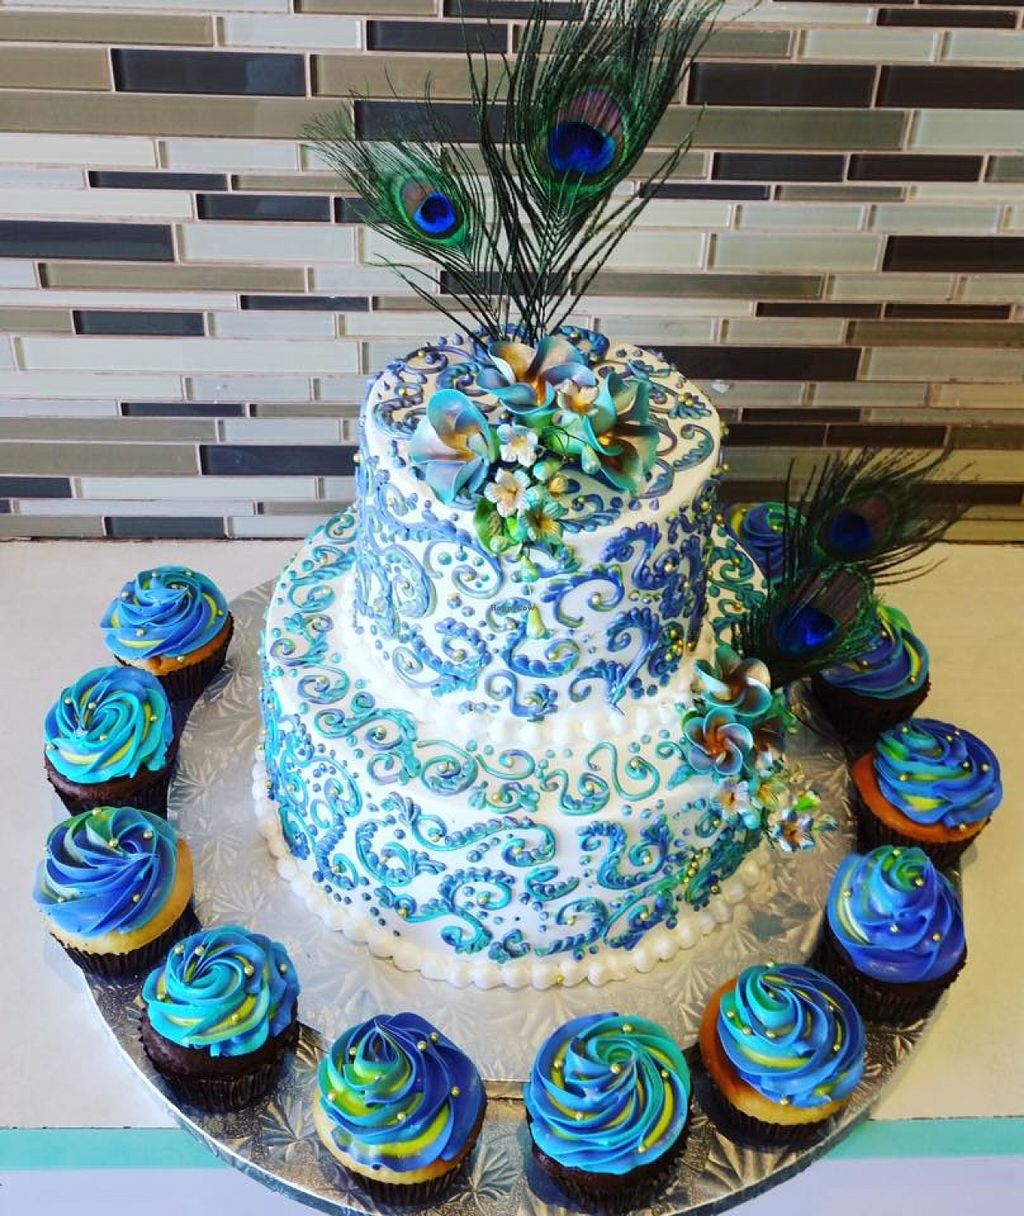 "Photo of Rashmi's Bakery  by <a href=""/members/profile/community"">community</a> <br/>peacock cake <br/> June 2, 2016  - <a href='/contact/abuse/image/63084/151952'>Report</a>"